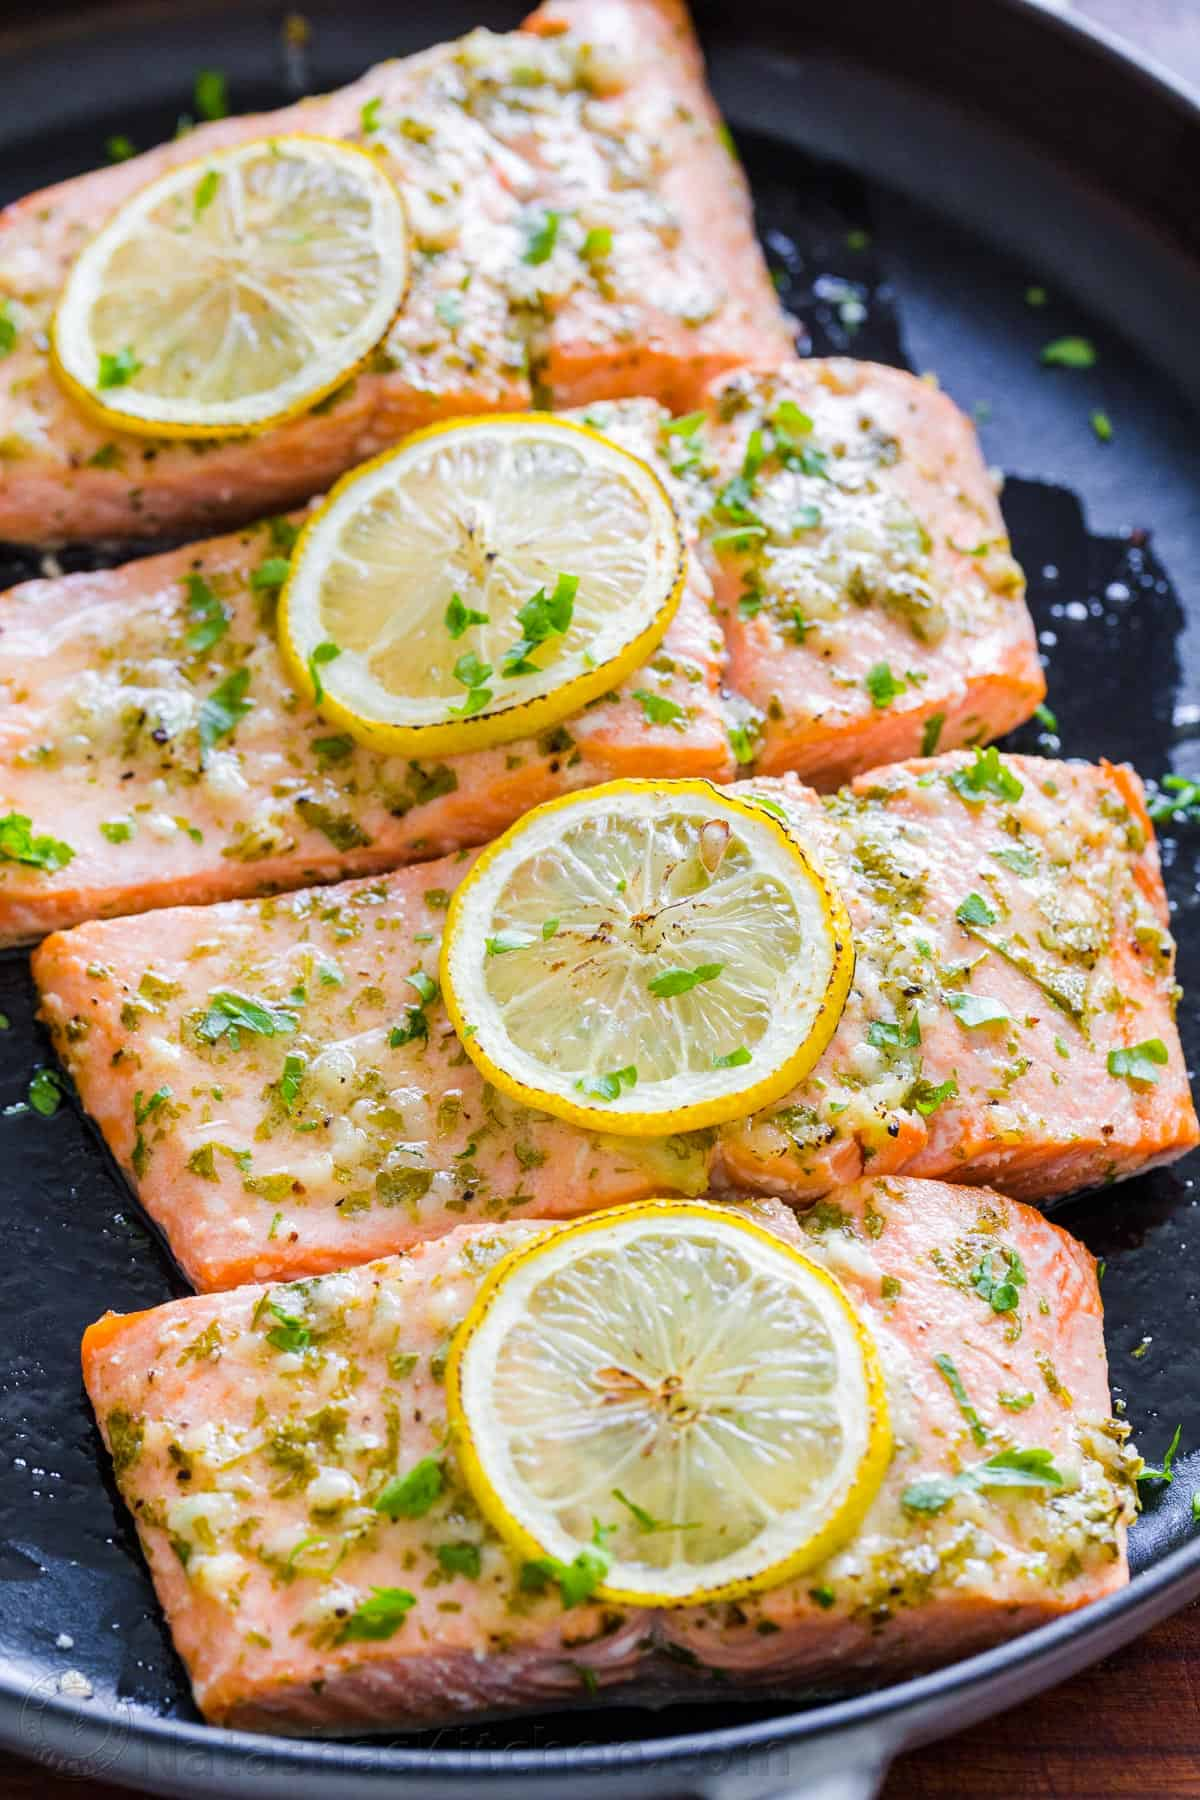 Baked Salmon With Garlic And Dijon Video Natashaskitchen Com